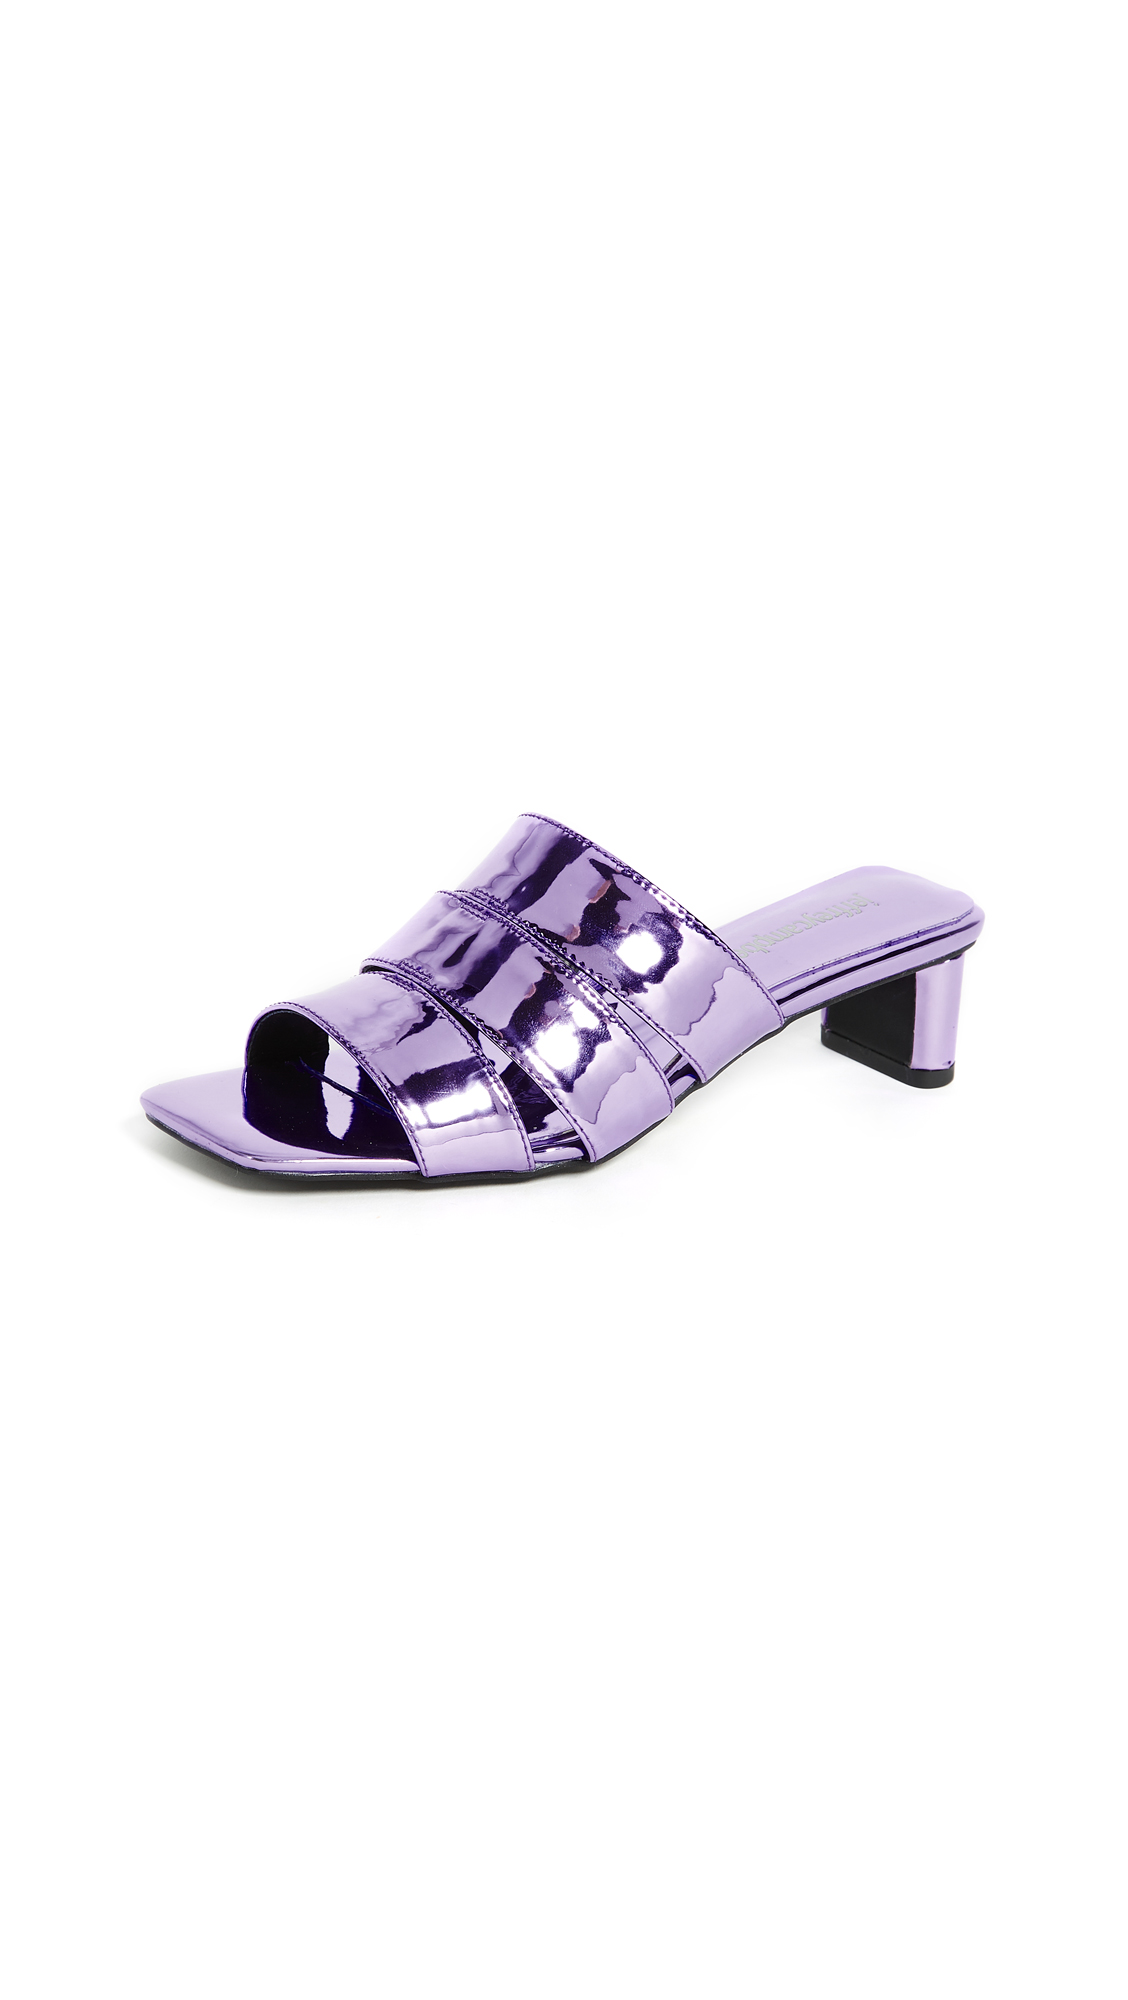 Jeffrey Campbell Rhymes Metallic Slide Sandals - Purple